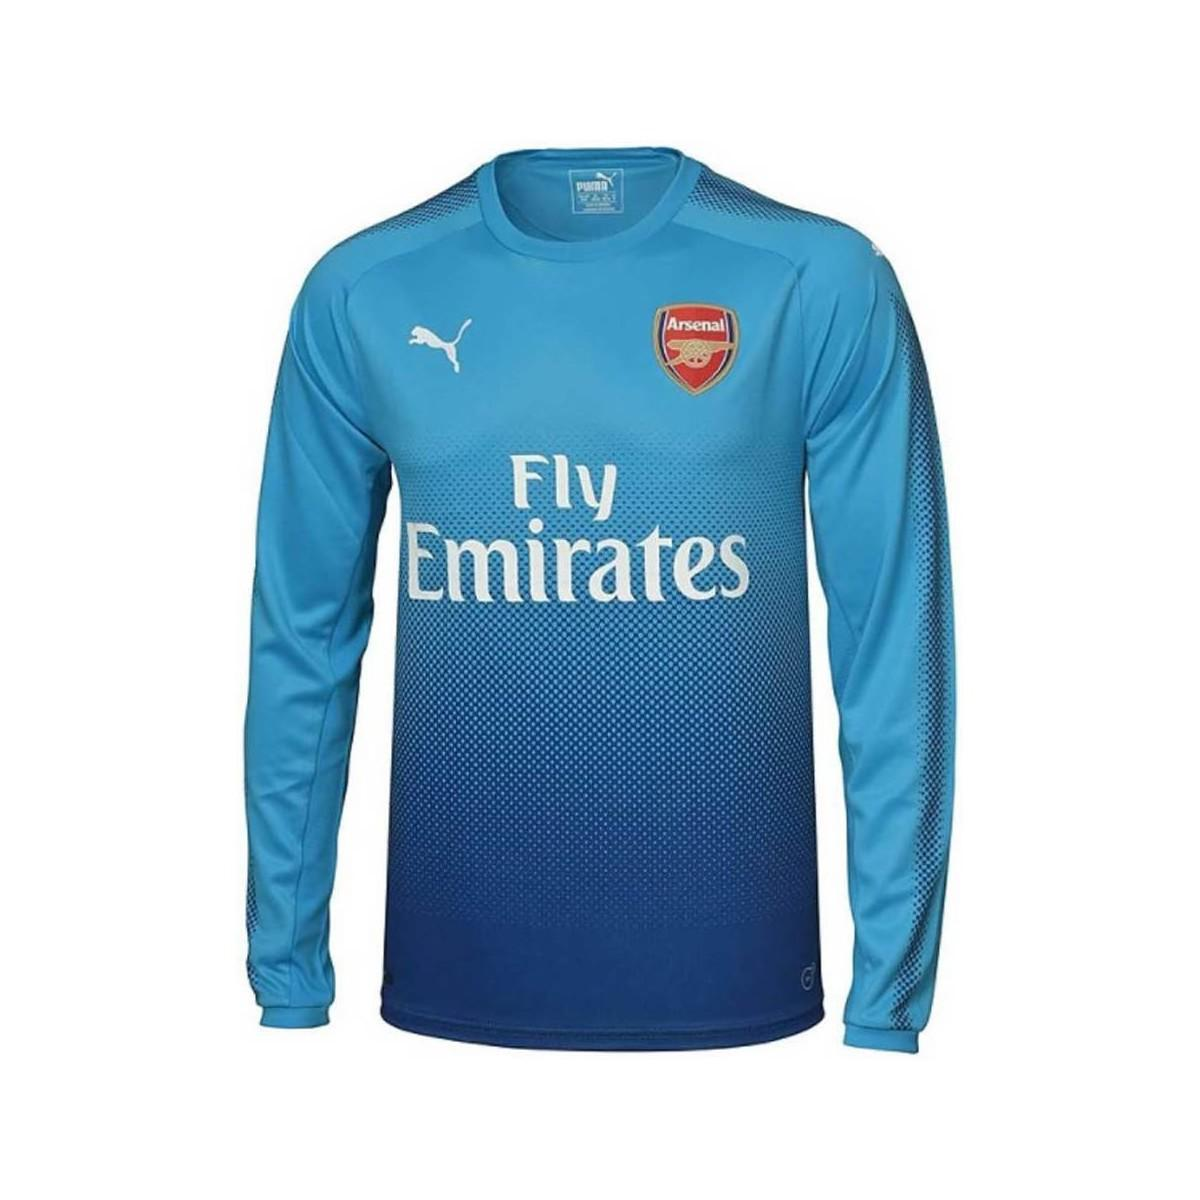 936508b3b Puma 2017-2018 Arsenal Away Long Sleeve Shirt Women s In Blue in ...